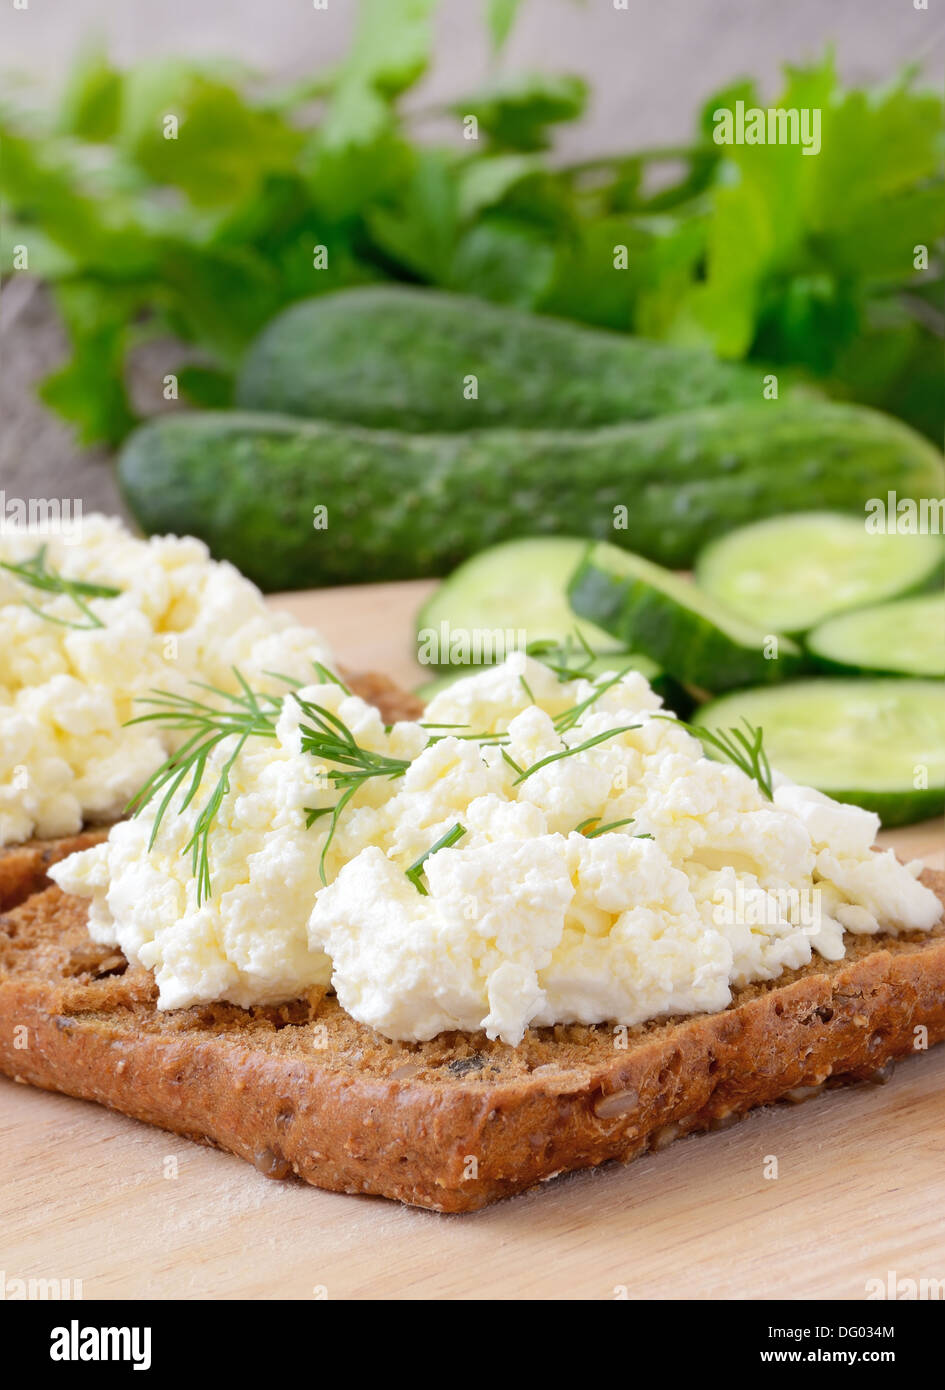 Sandwiches with curd cheese and cucumber slices - Stock Image